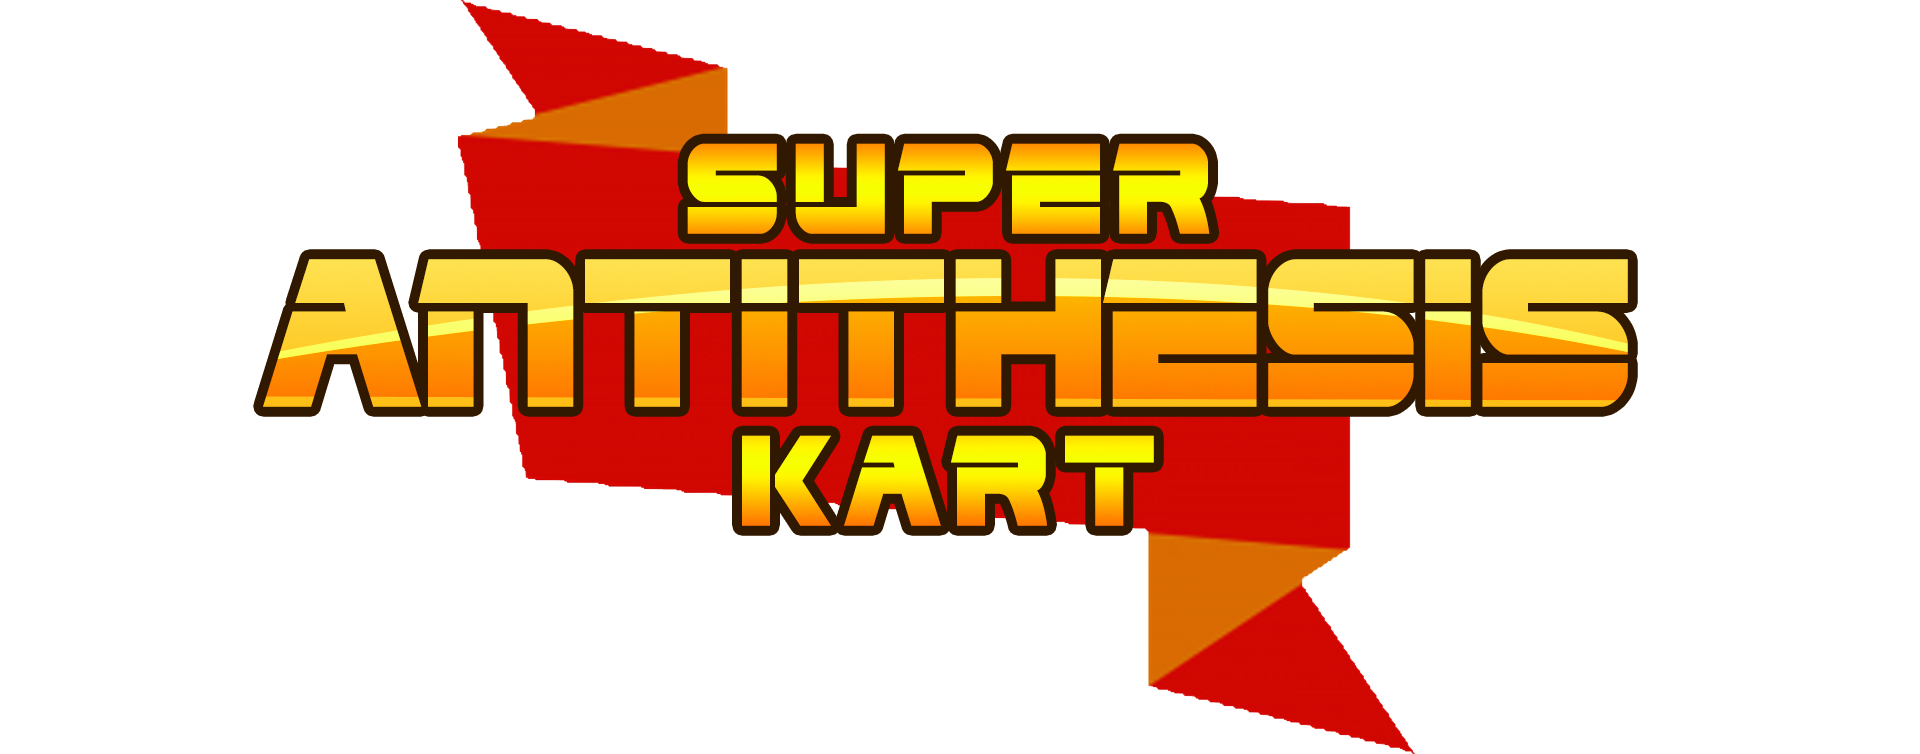 Super Antithesis Kart